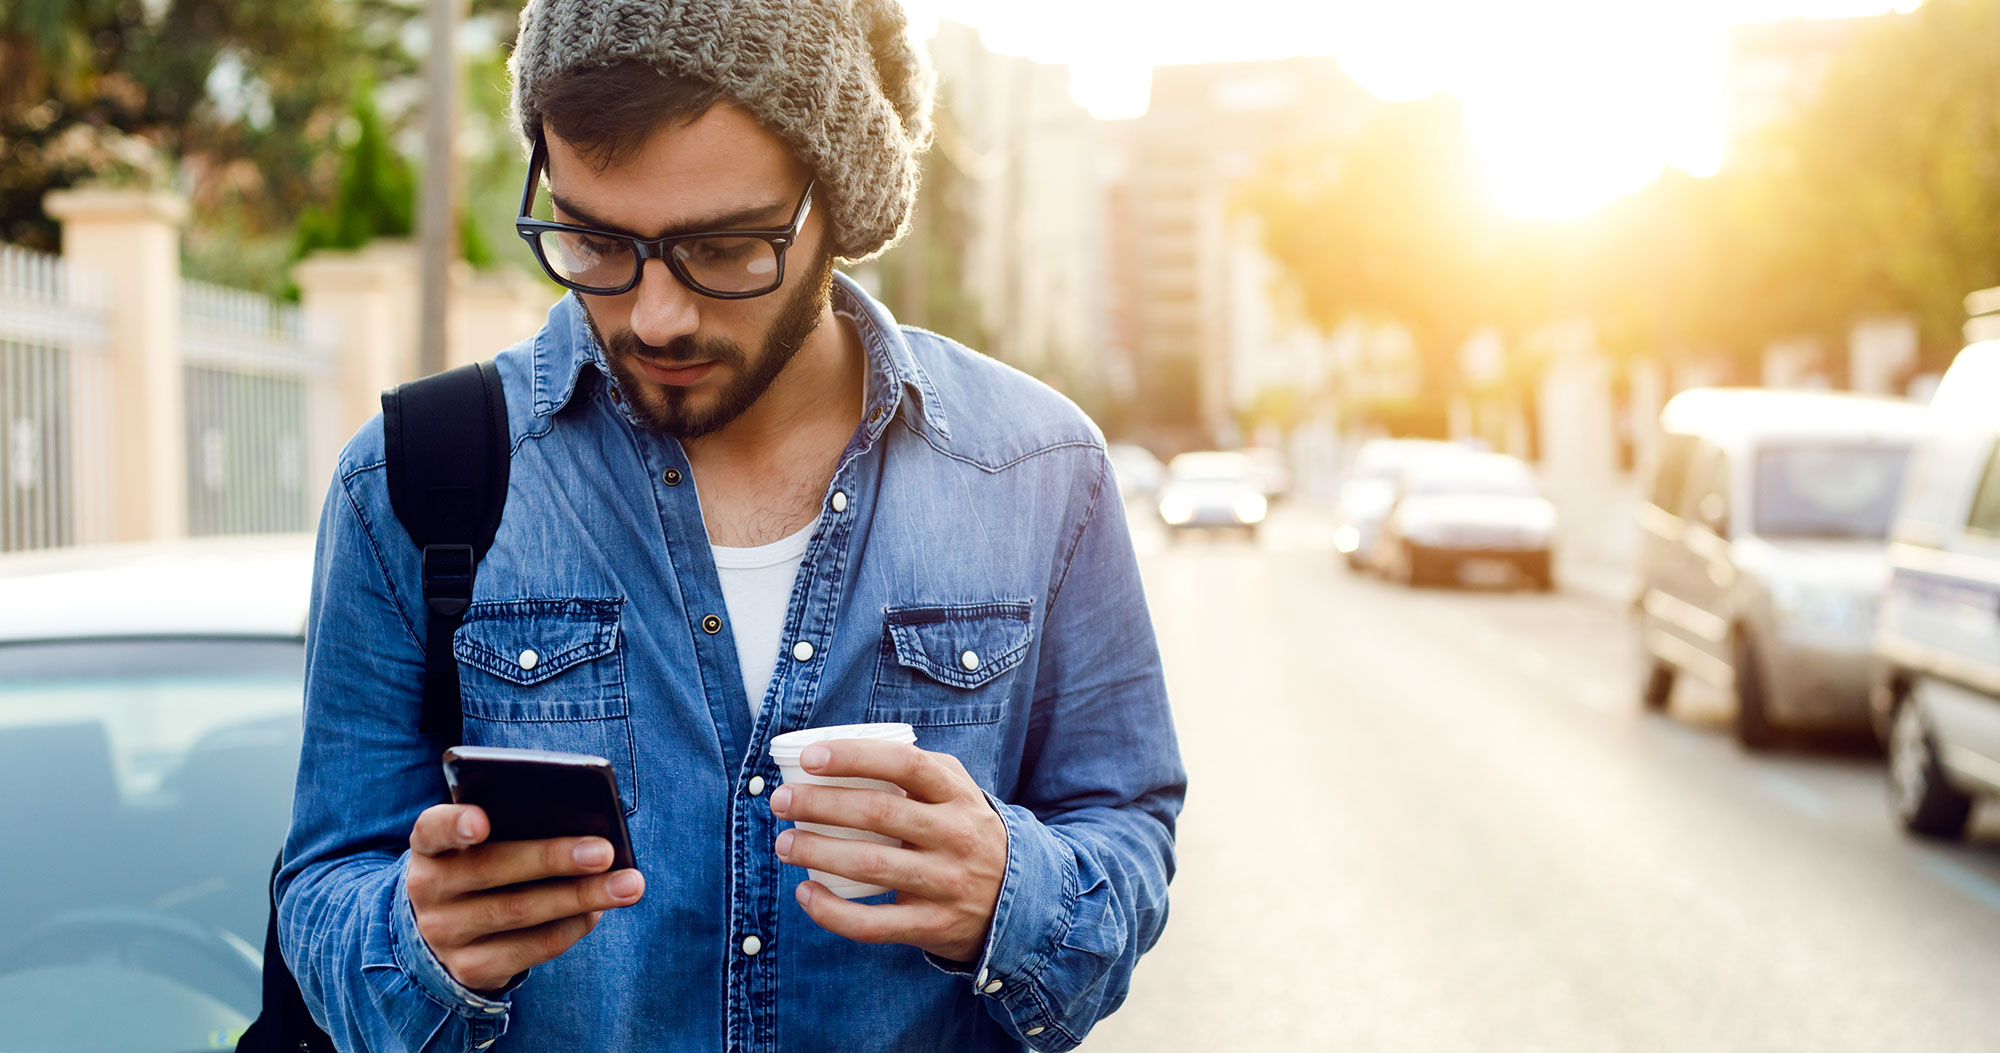 Millennials lead telehealth trends (and signal what's next)